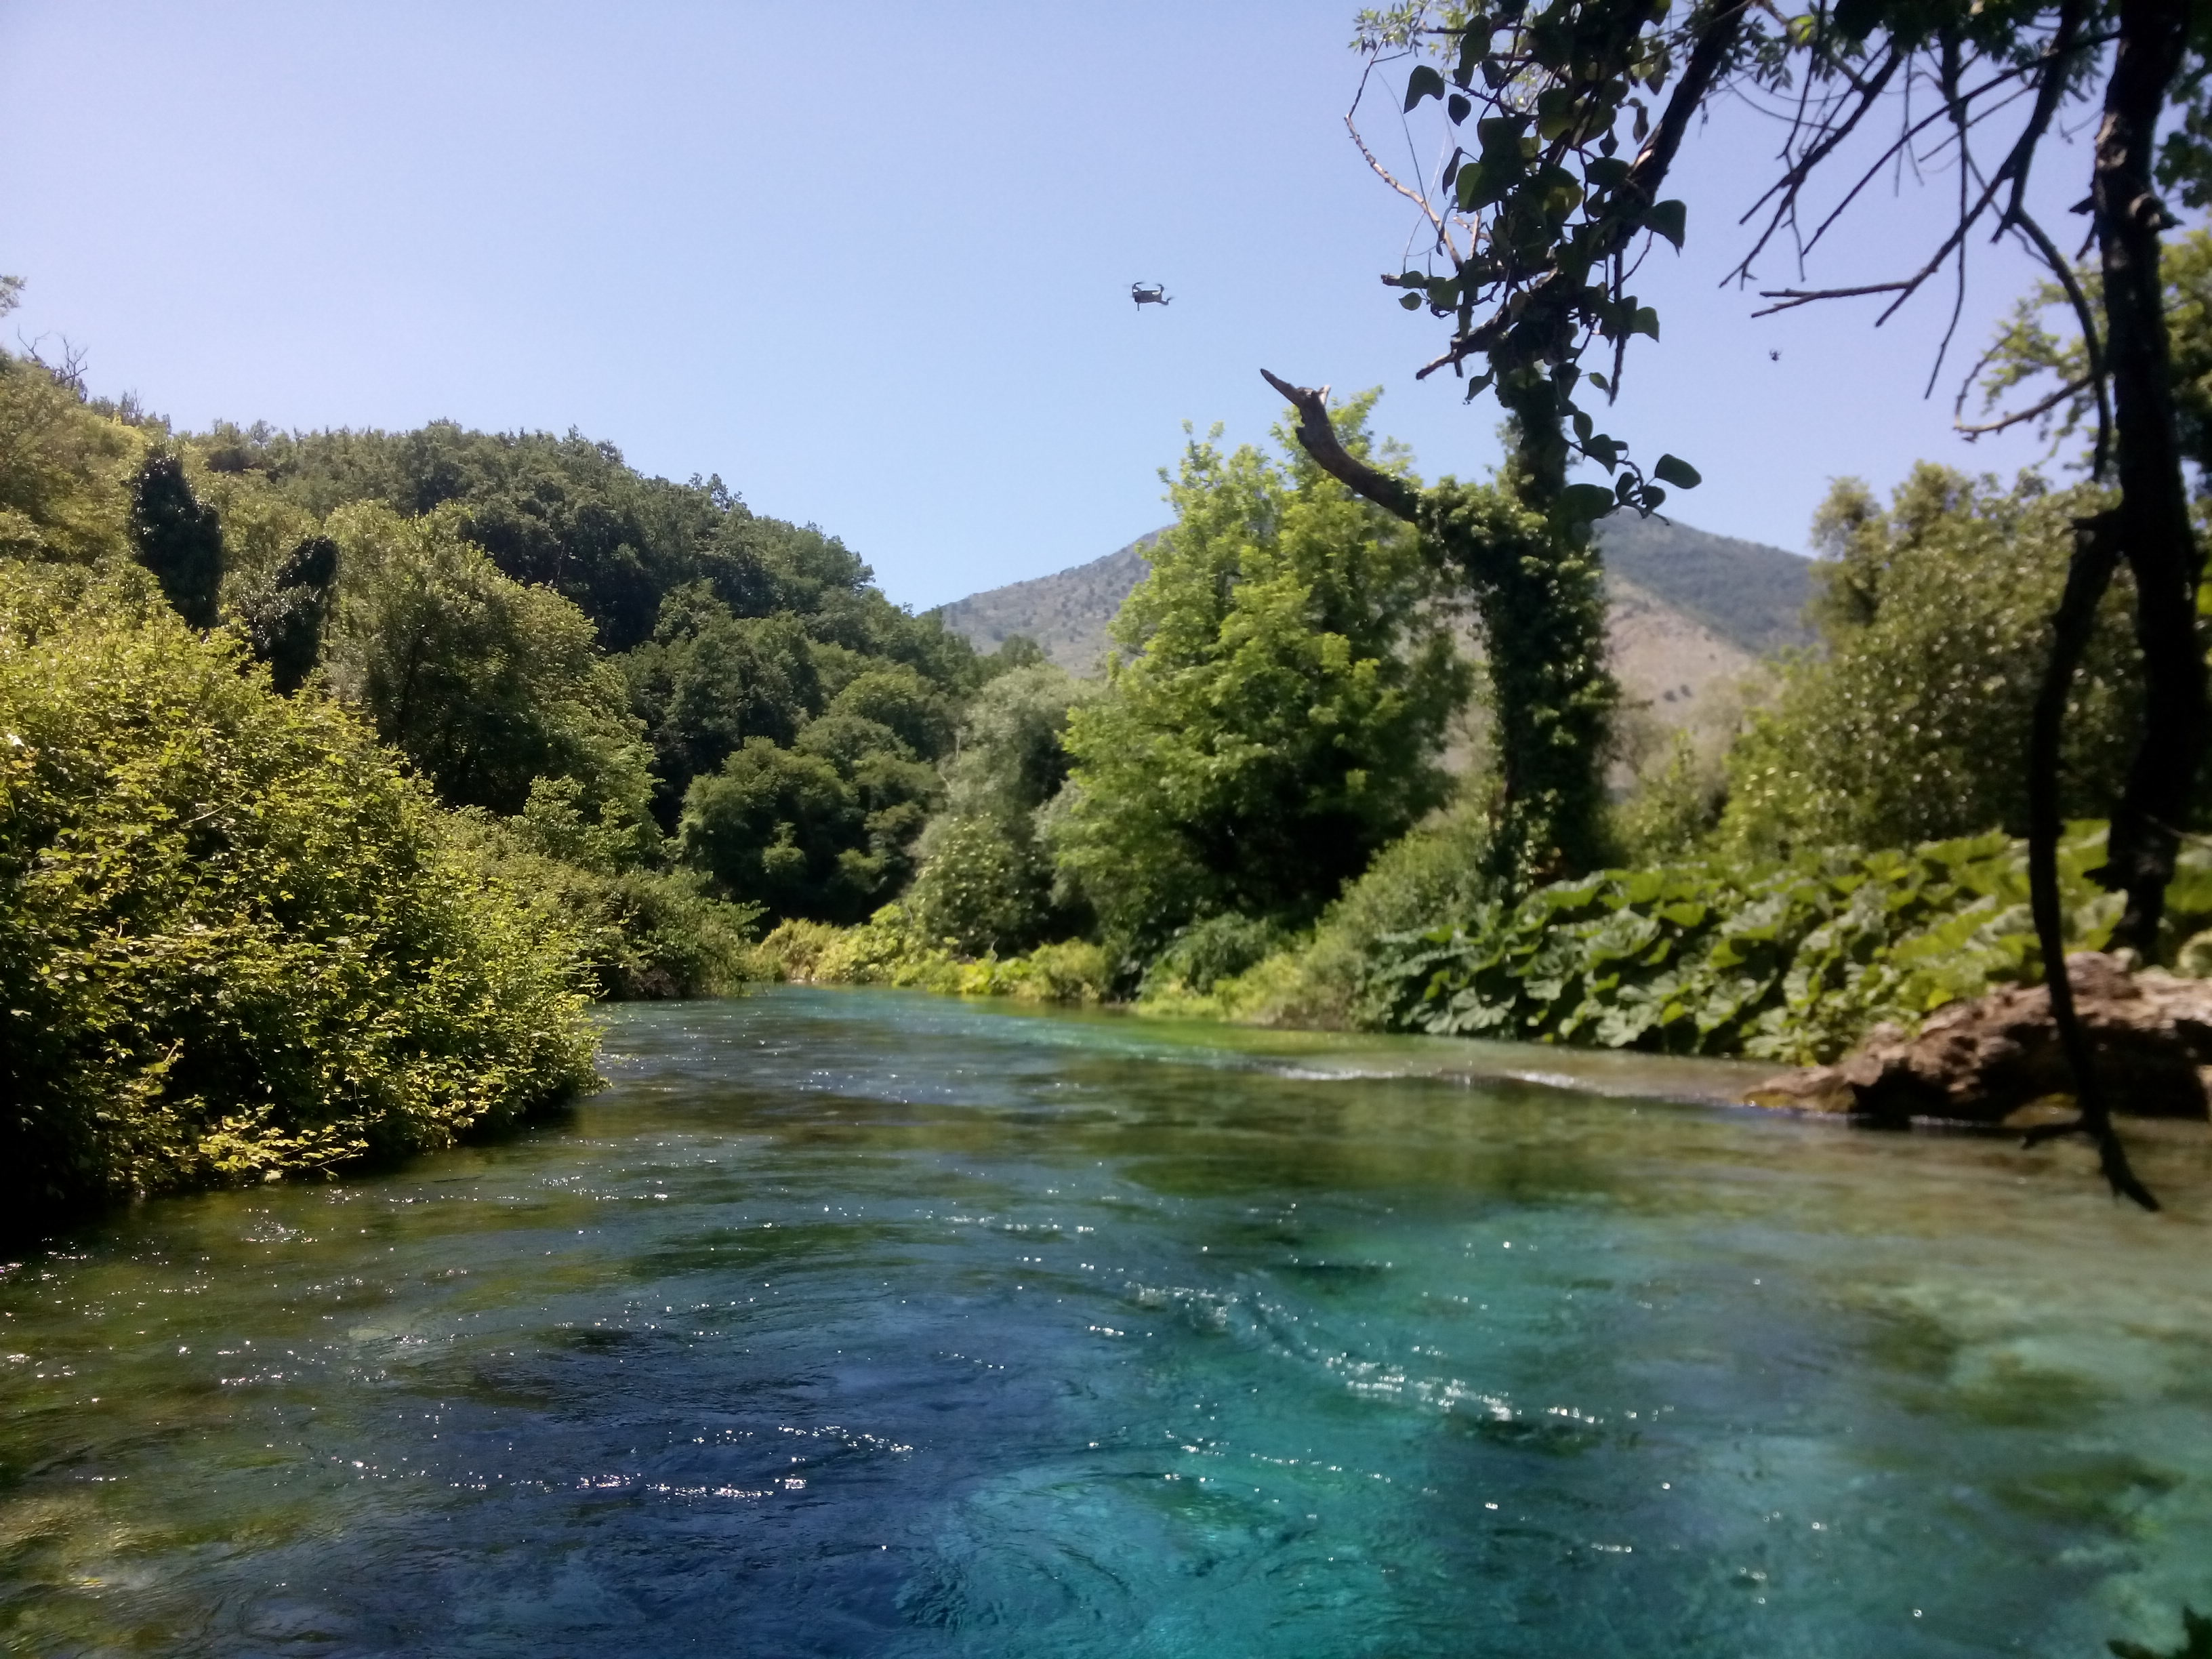 A view across a bright blue bubbling spring with trees around and mountains in the background